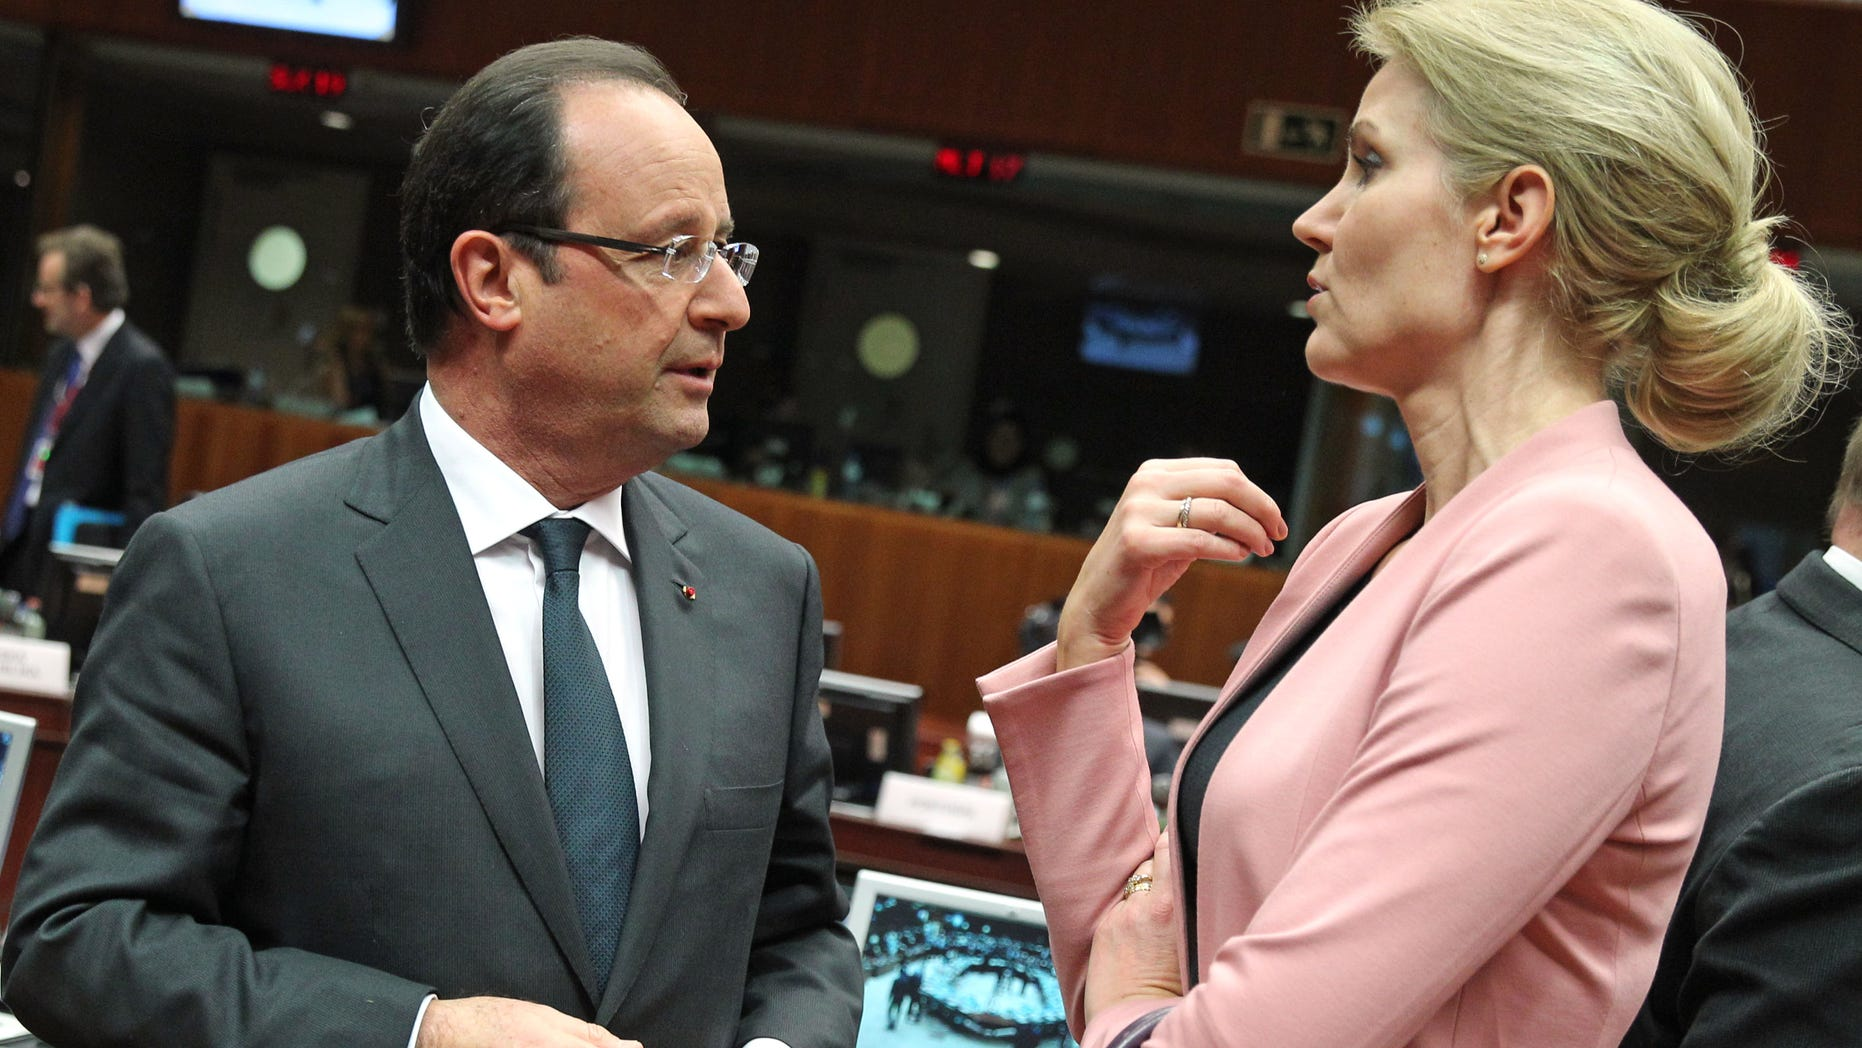 French President Francois Hollande, left, talks with Denmark's Prime Minister Helle Thorning-Schmidt, during an EU summit at the European Council building in Brussels, Thursday, Dec. 19, 2013. The economic crisis is on the EU summit's agenda, as well as issues ranging from defense and banking to relations with Ukraine and the crisis in Central African Republic. (AP Photo/Yves Logghe)